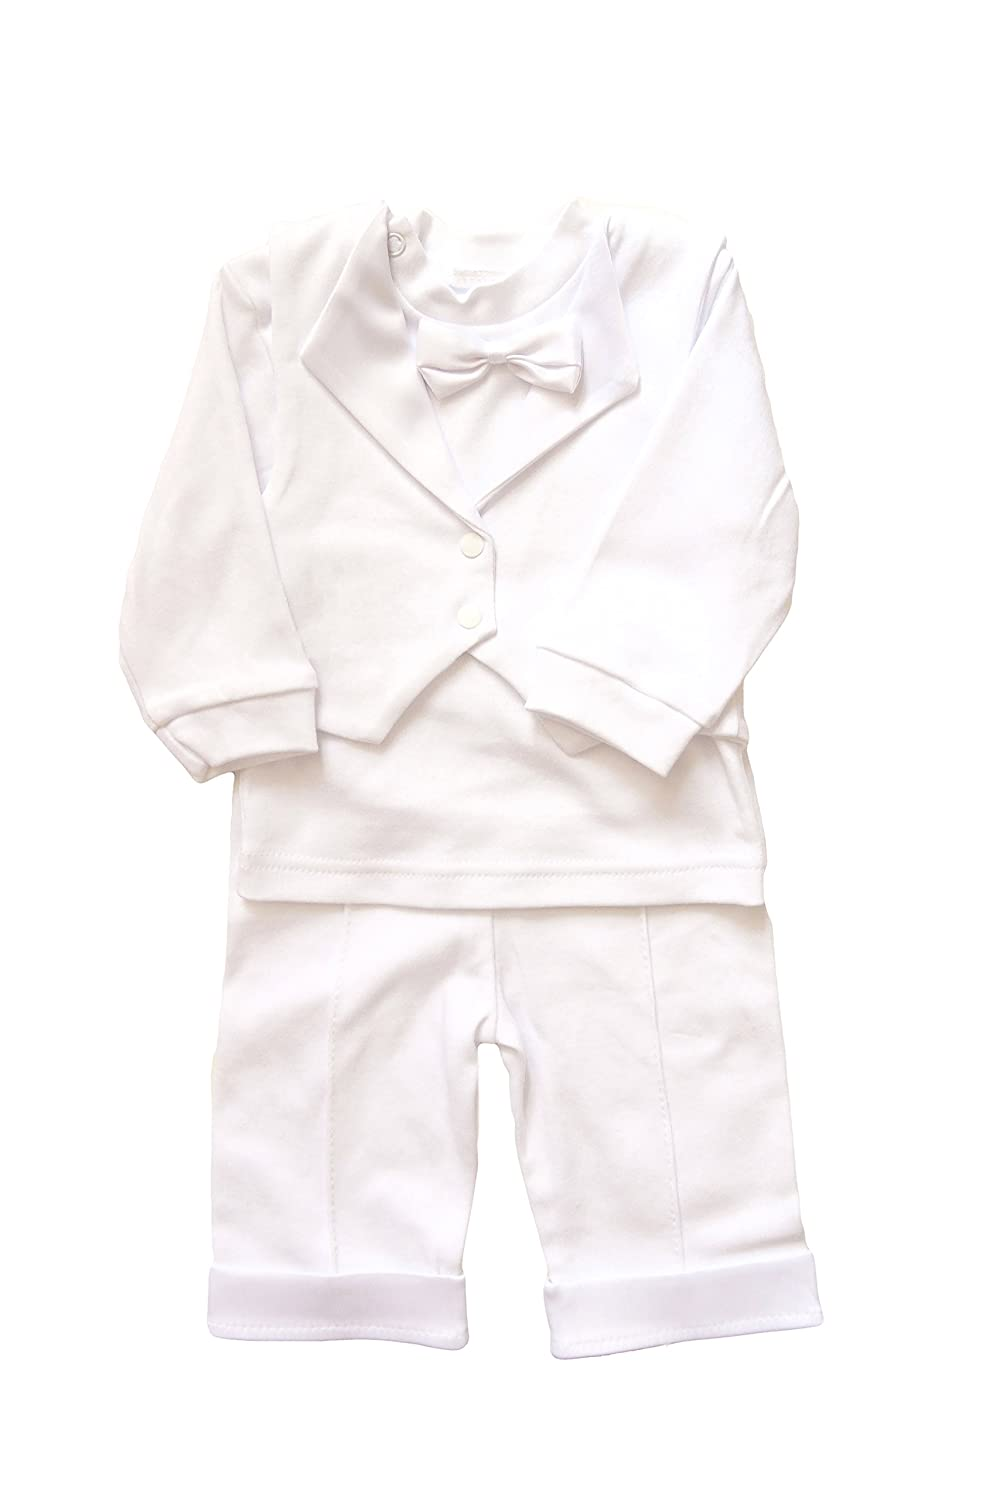 2a585cd21b8 Amazon.com  White Christening Baby Suit Cotton Baptism Baby Boy Suit  Embroidered Pattern (9-12 month H-80 cm)  Baby